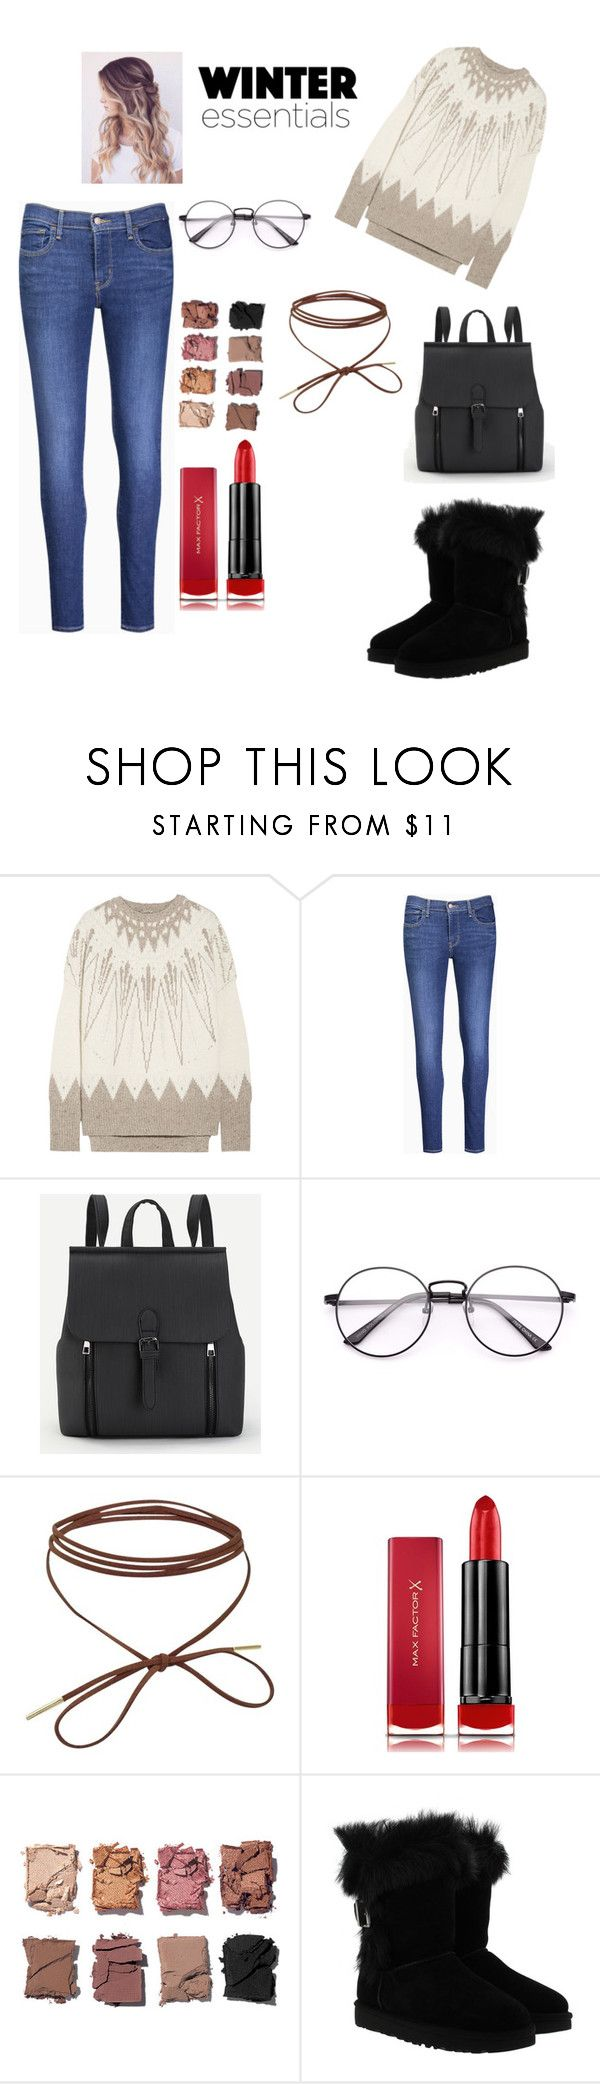 """""Baby it's cold outside!"""" by esburger-1 ❤ liked on Polyvore featuring ADAM, Levi's, Max Factor, Illamasqua and UGG"